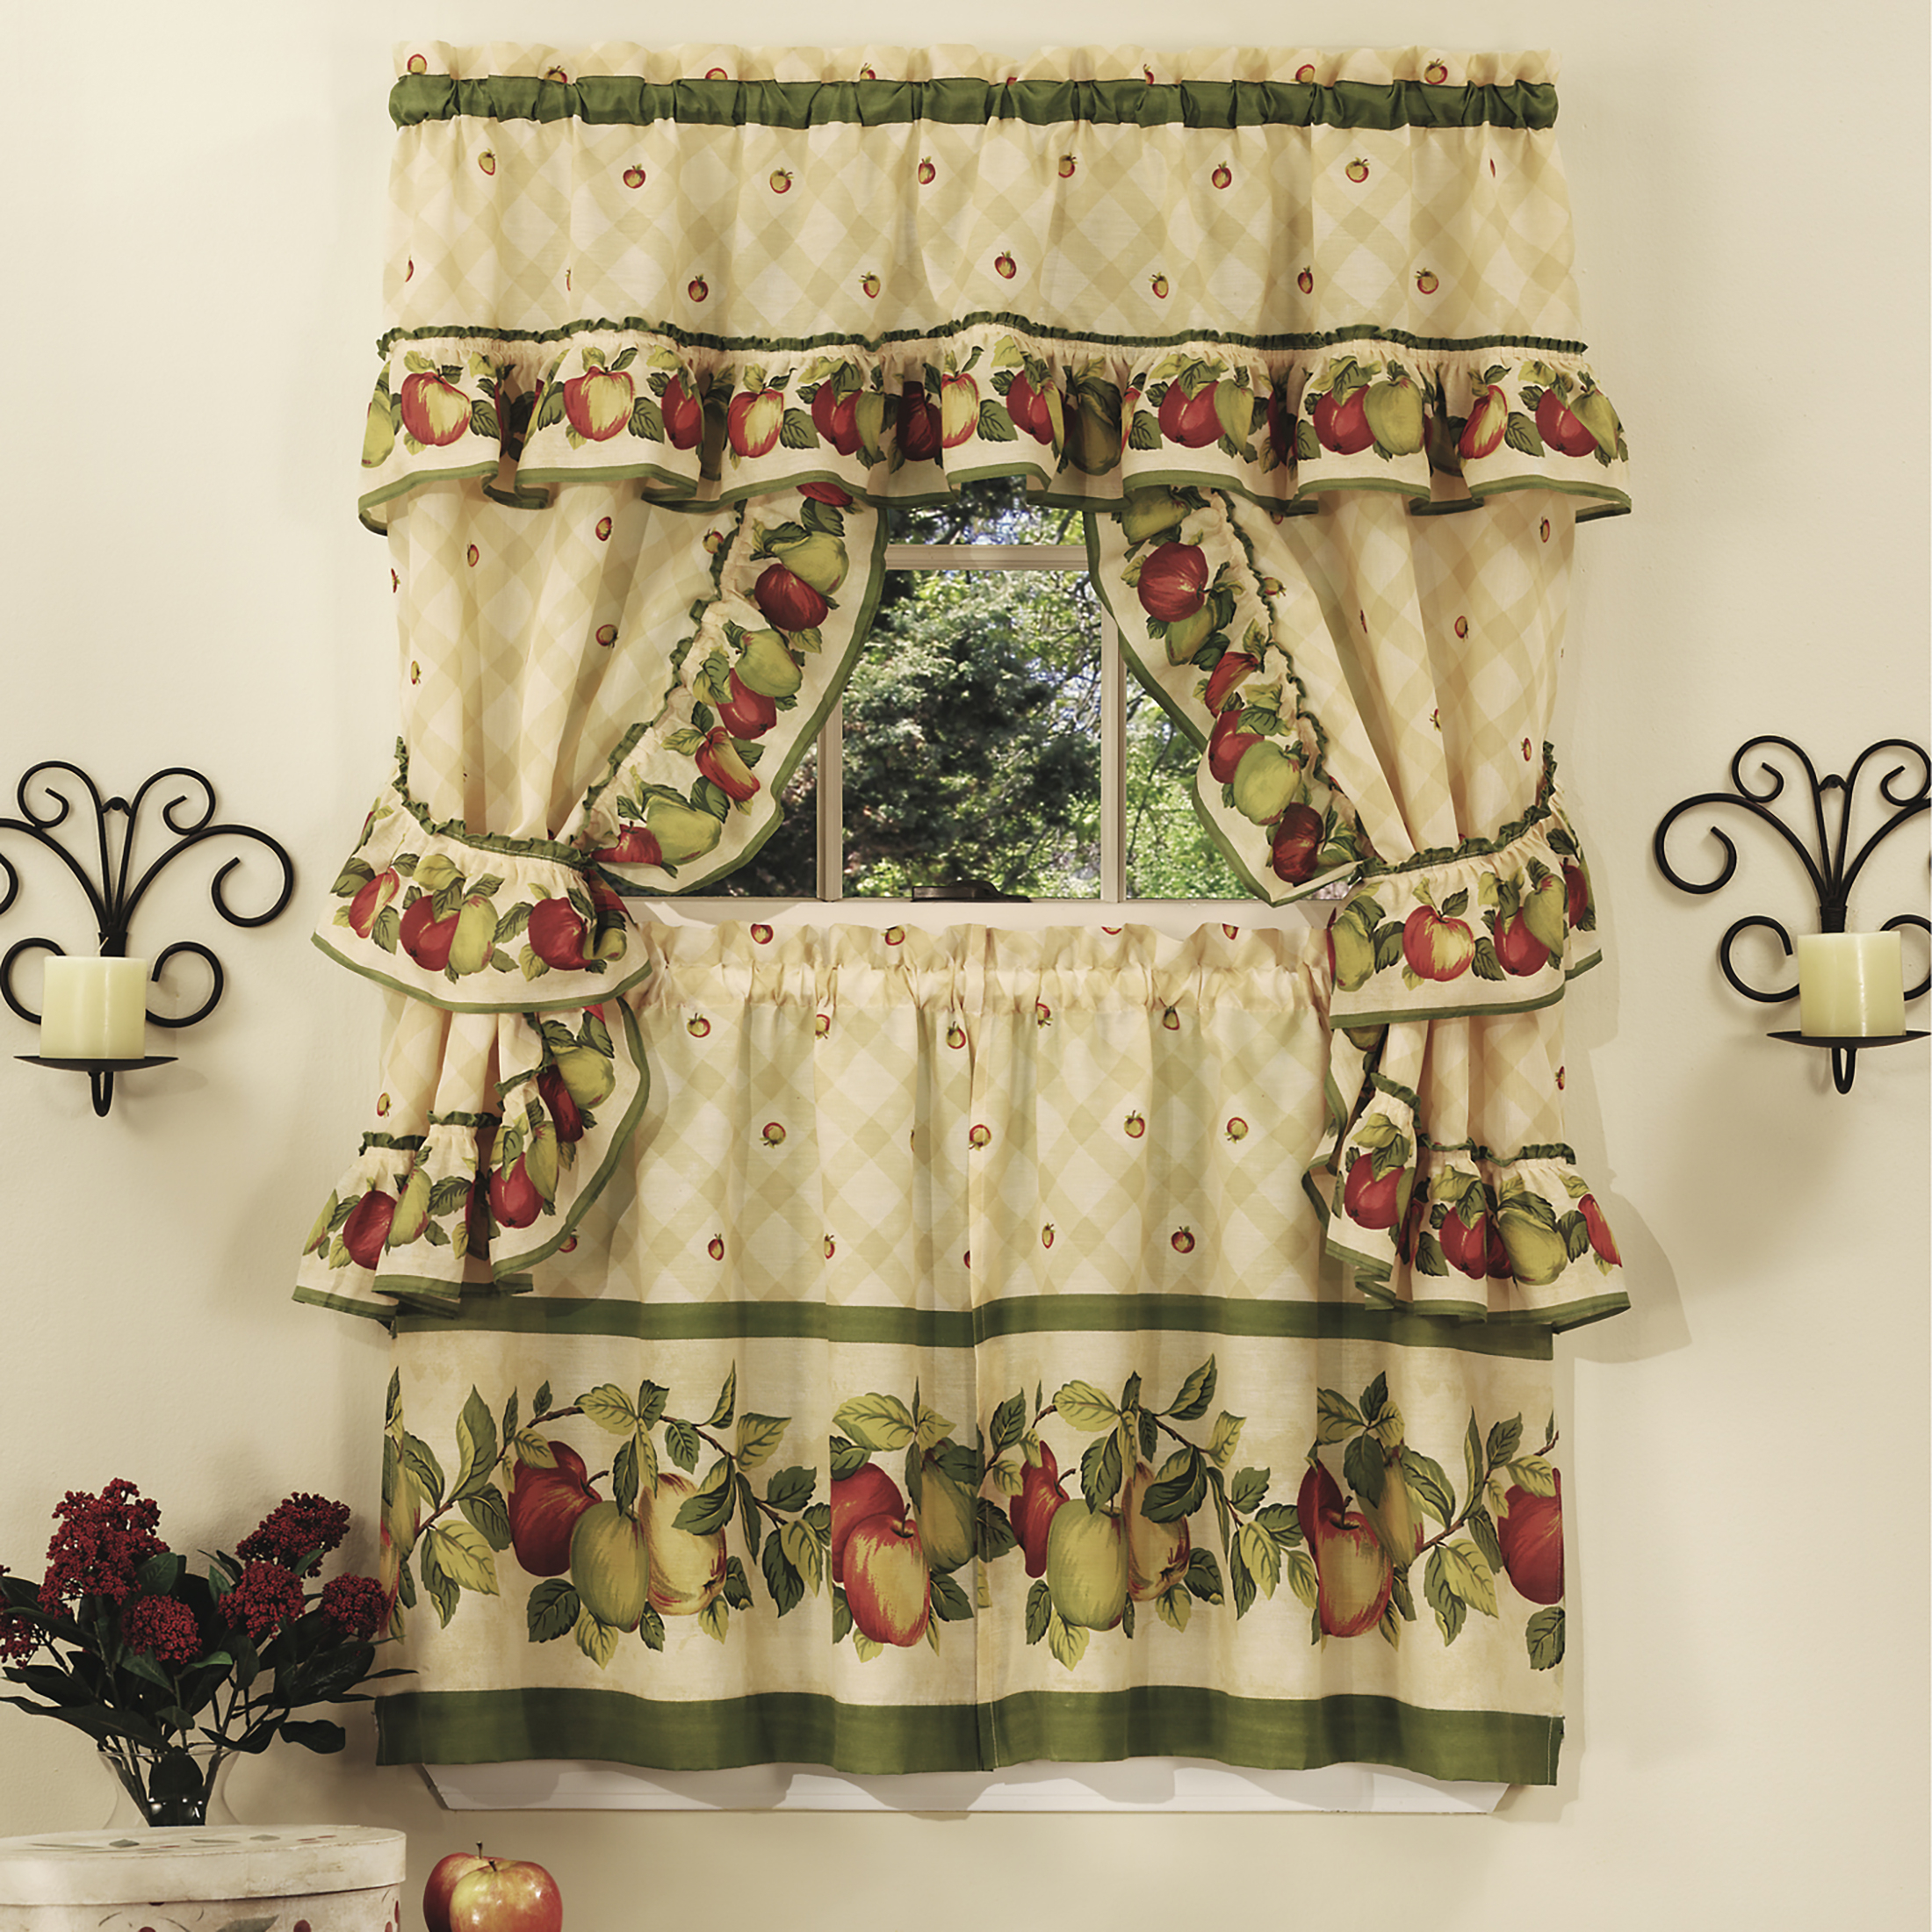 Details About 5Pc Window Kitchen Curtain Cottage Set, Apple Vines, Tiers, Valance, Tiebacks For Cottage Ivy Curtain Tiers (View 6 of 20)